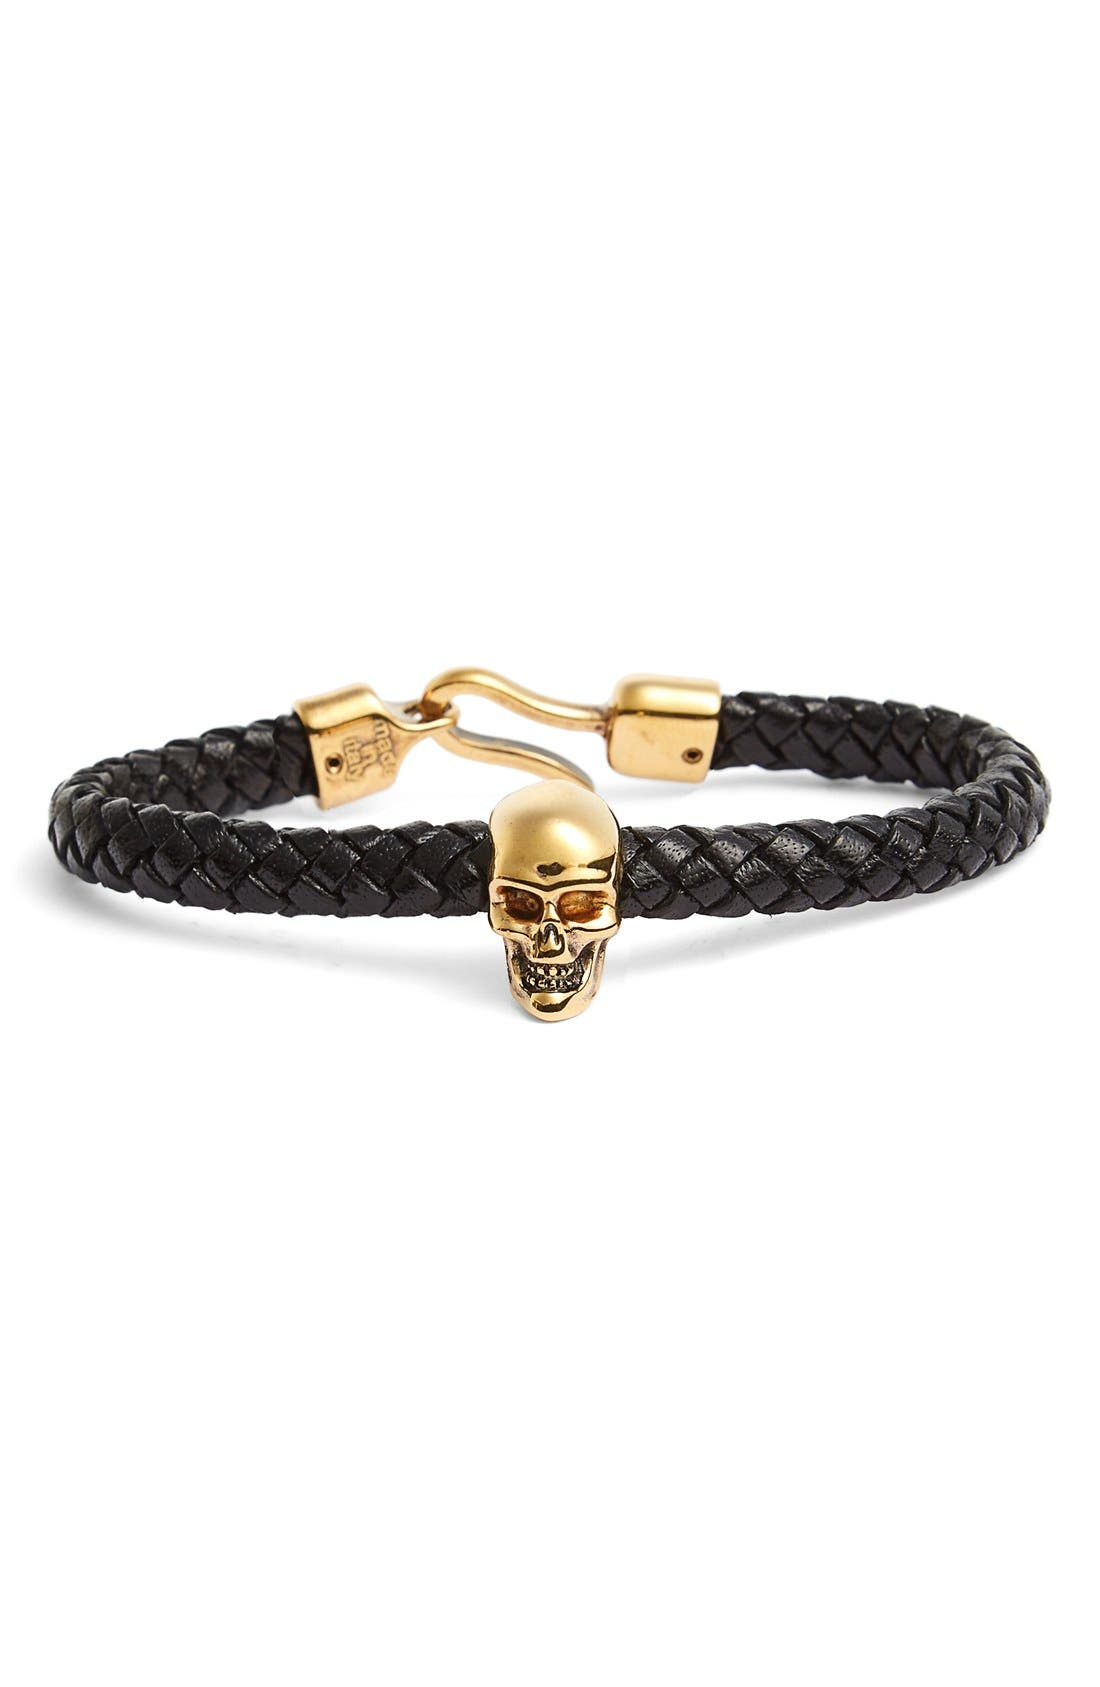 Main Image - Alexander McQueen Braided Leather Bracelet with Skull